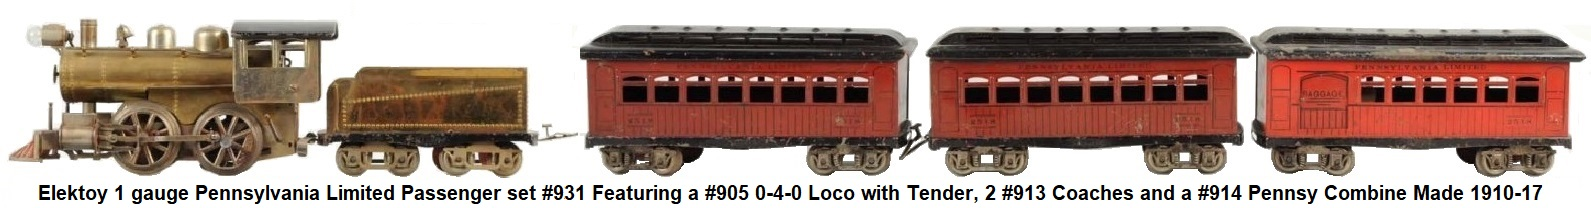 Elektoy #1 gauge Pennsylvania Limited Passenger Set with #905 0-4-0 Steam Outline loco, 8-wheel tender, 2 #913 Pennsylvania Coaches, #914 Pennsylvania Combo car, made 1010-17